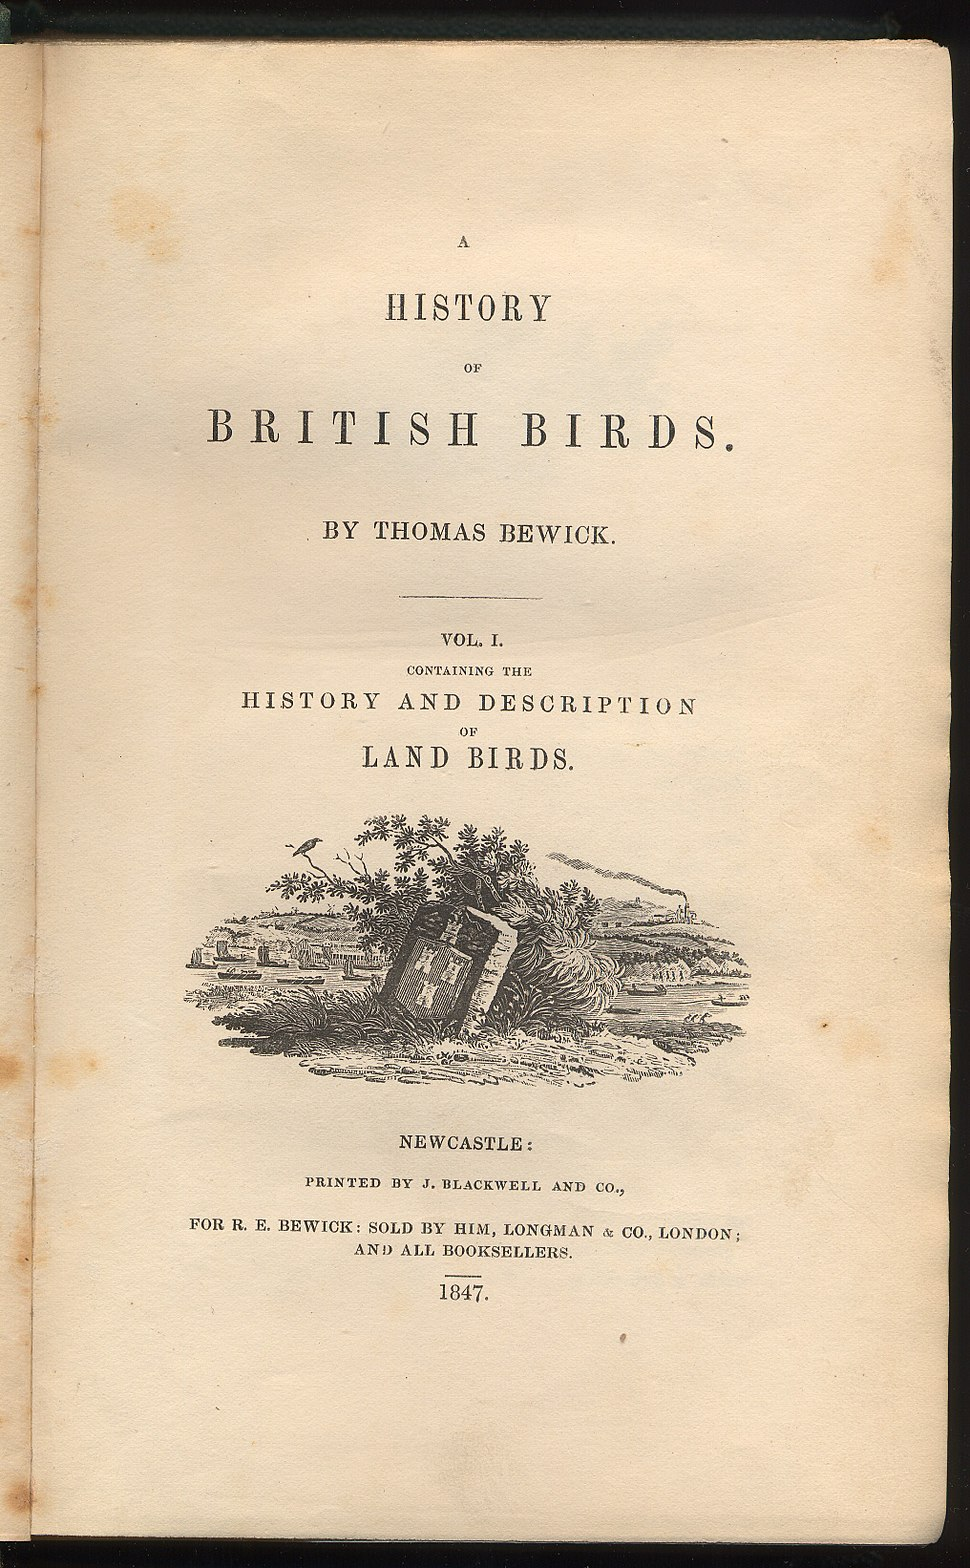 History of British Birds by Thomas Bewick title page Vol 1 1847 edition